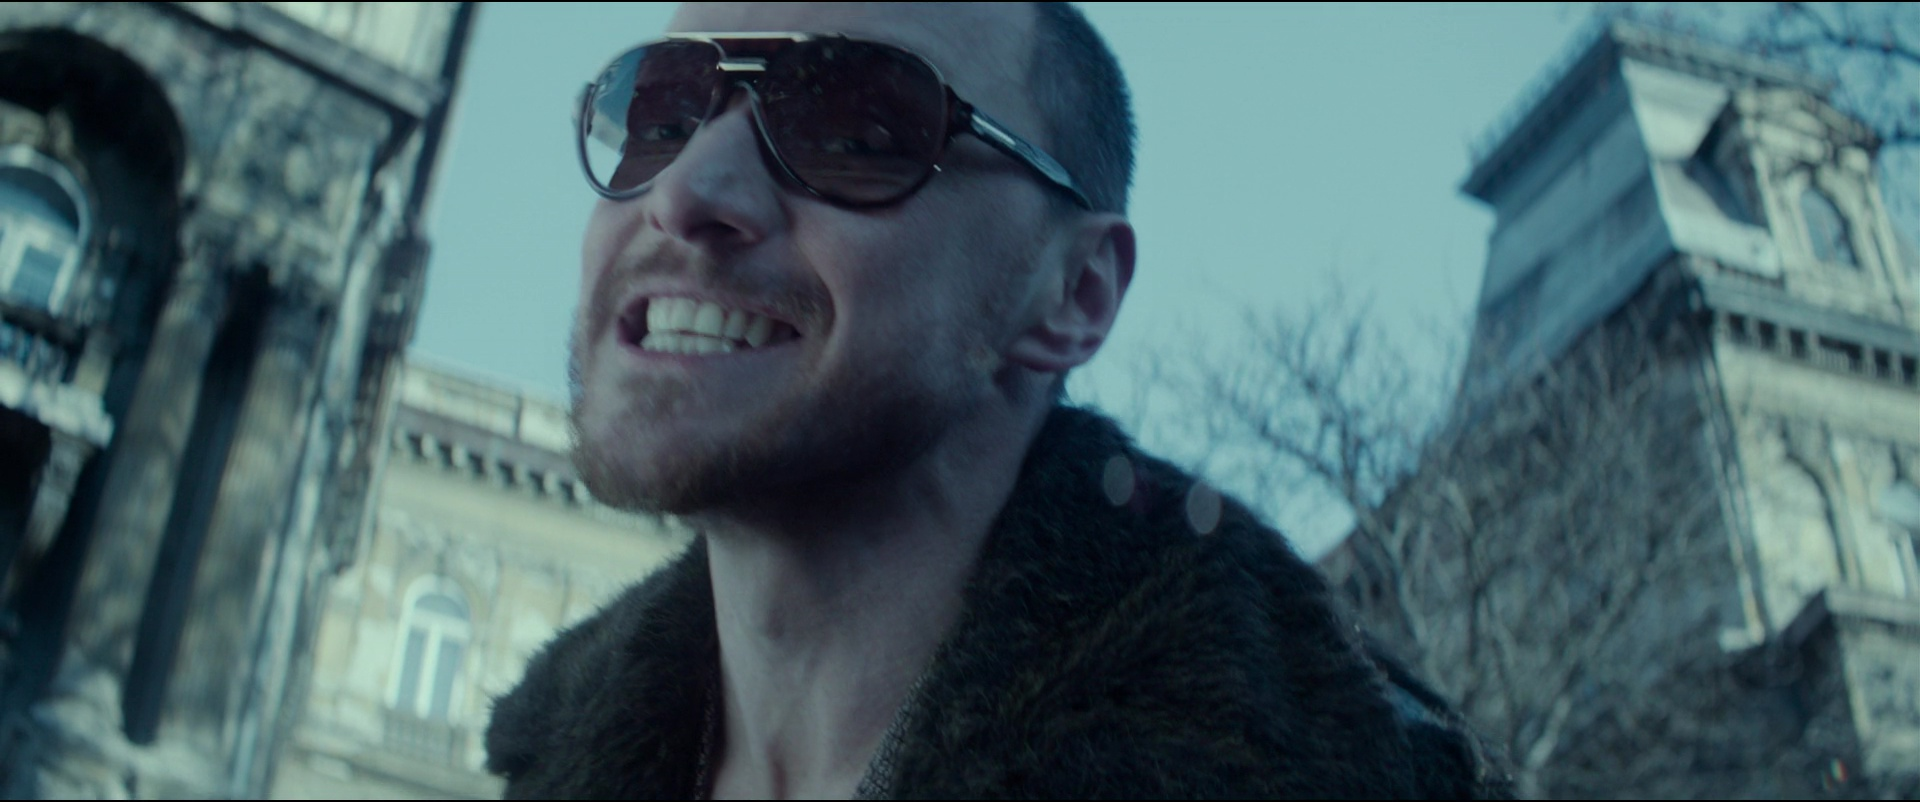 6fcb4f9b84 Tom Ford Sunglasses Worn by James McAvoy in Atomic Blonde (2017) Movie  Product Placement